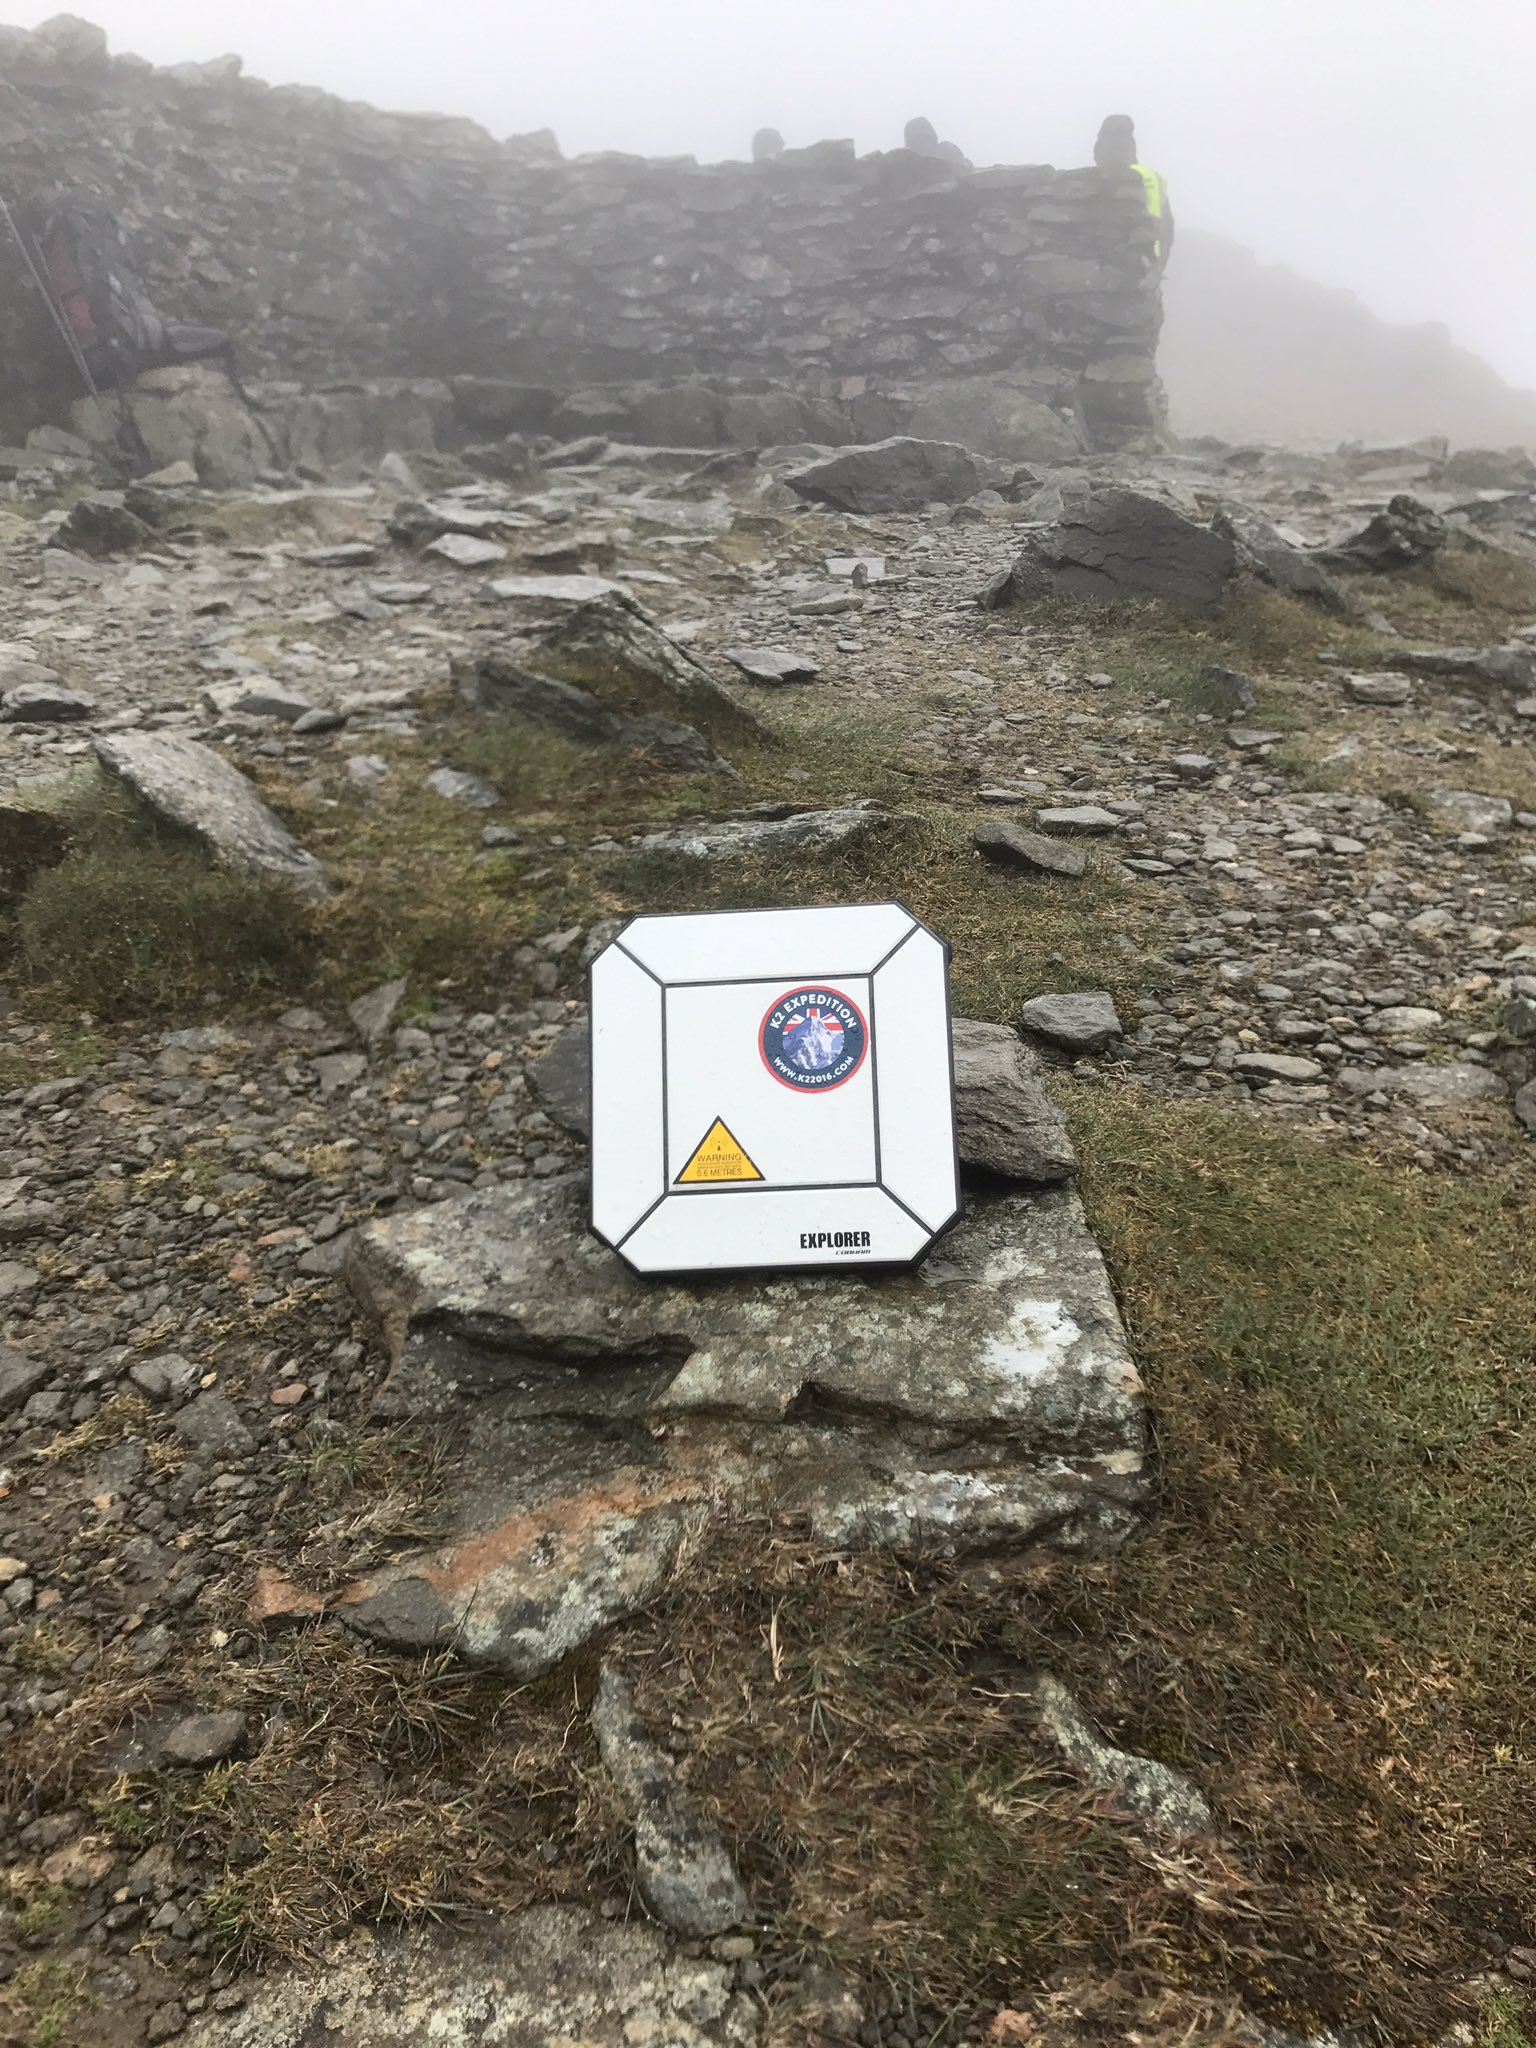 The @arqiva #SummitSelfie point has made it to the top of Helvellyn! #cumbrianchallenge https://t.co/UeTYWPT8MQ